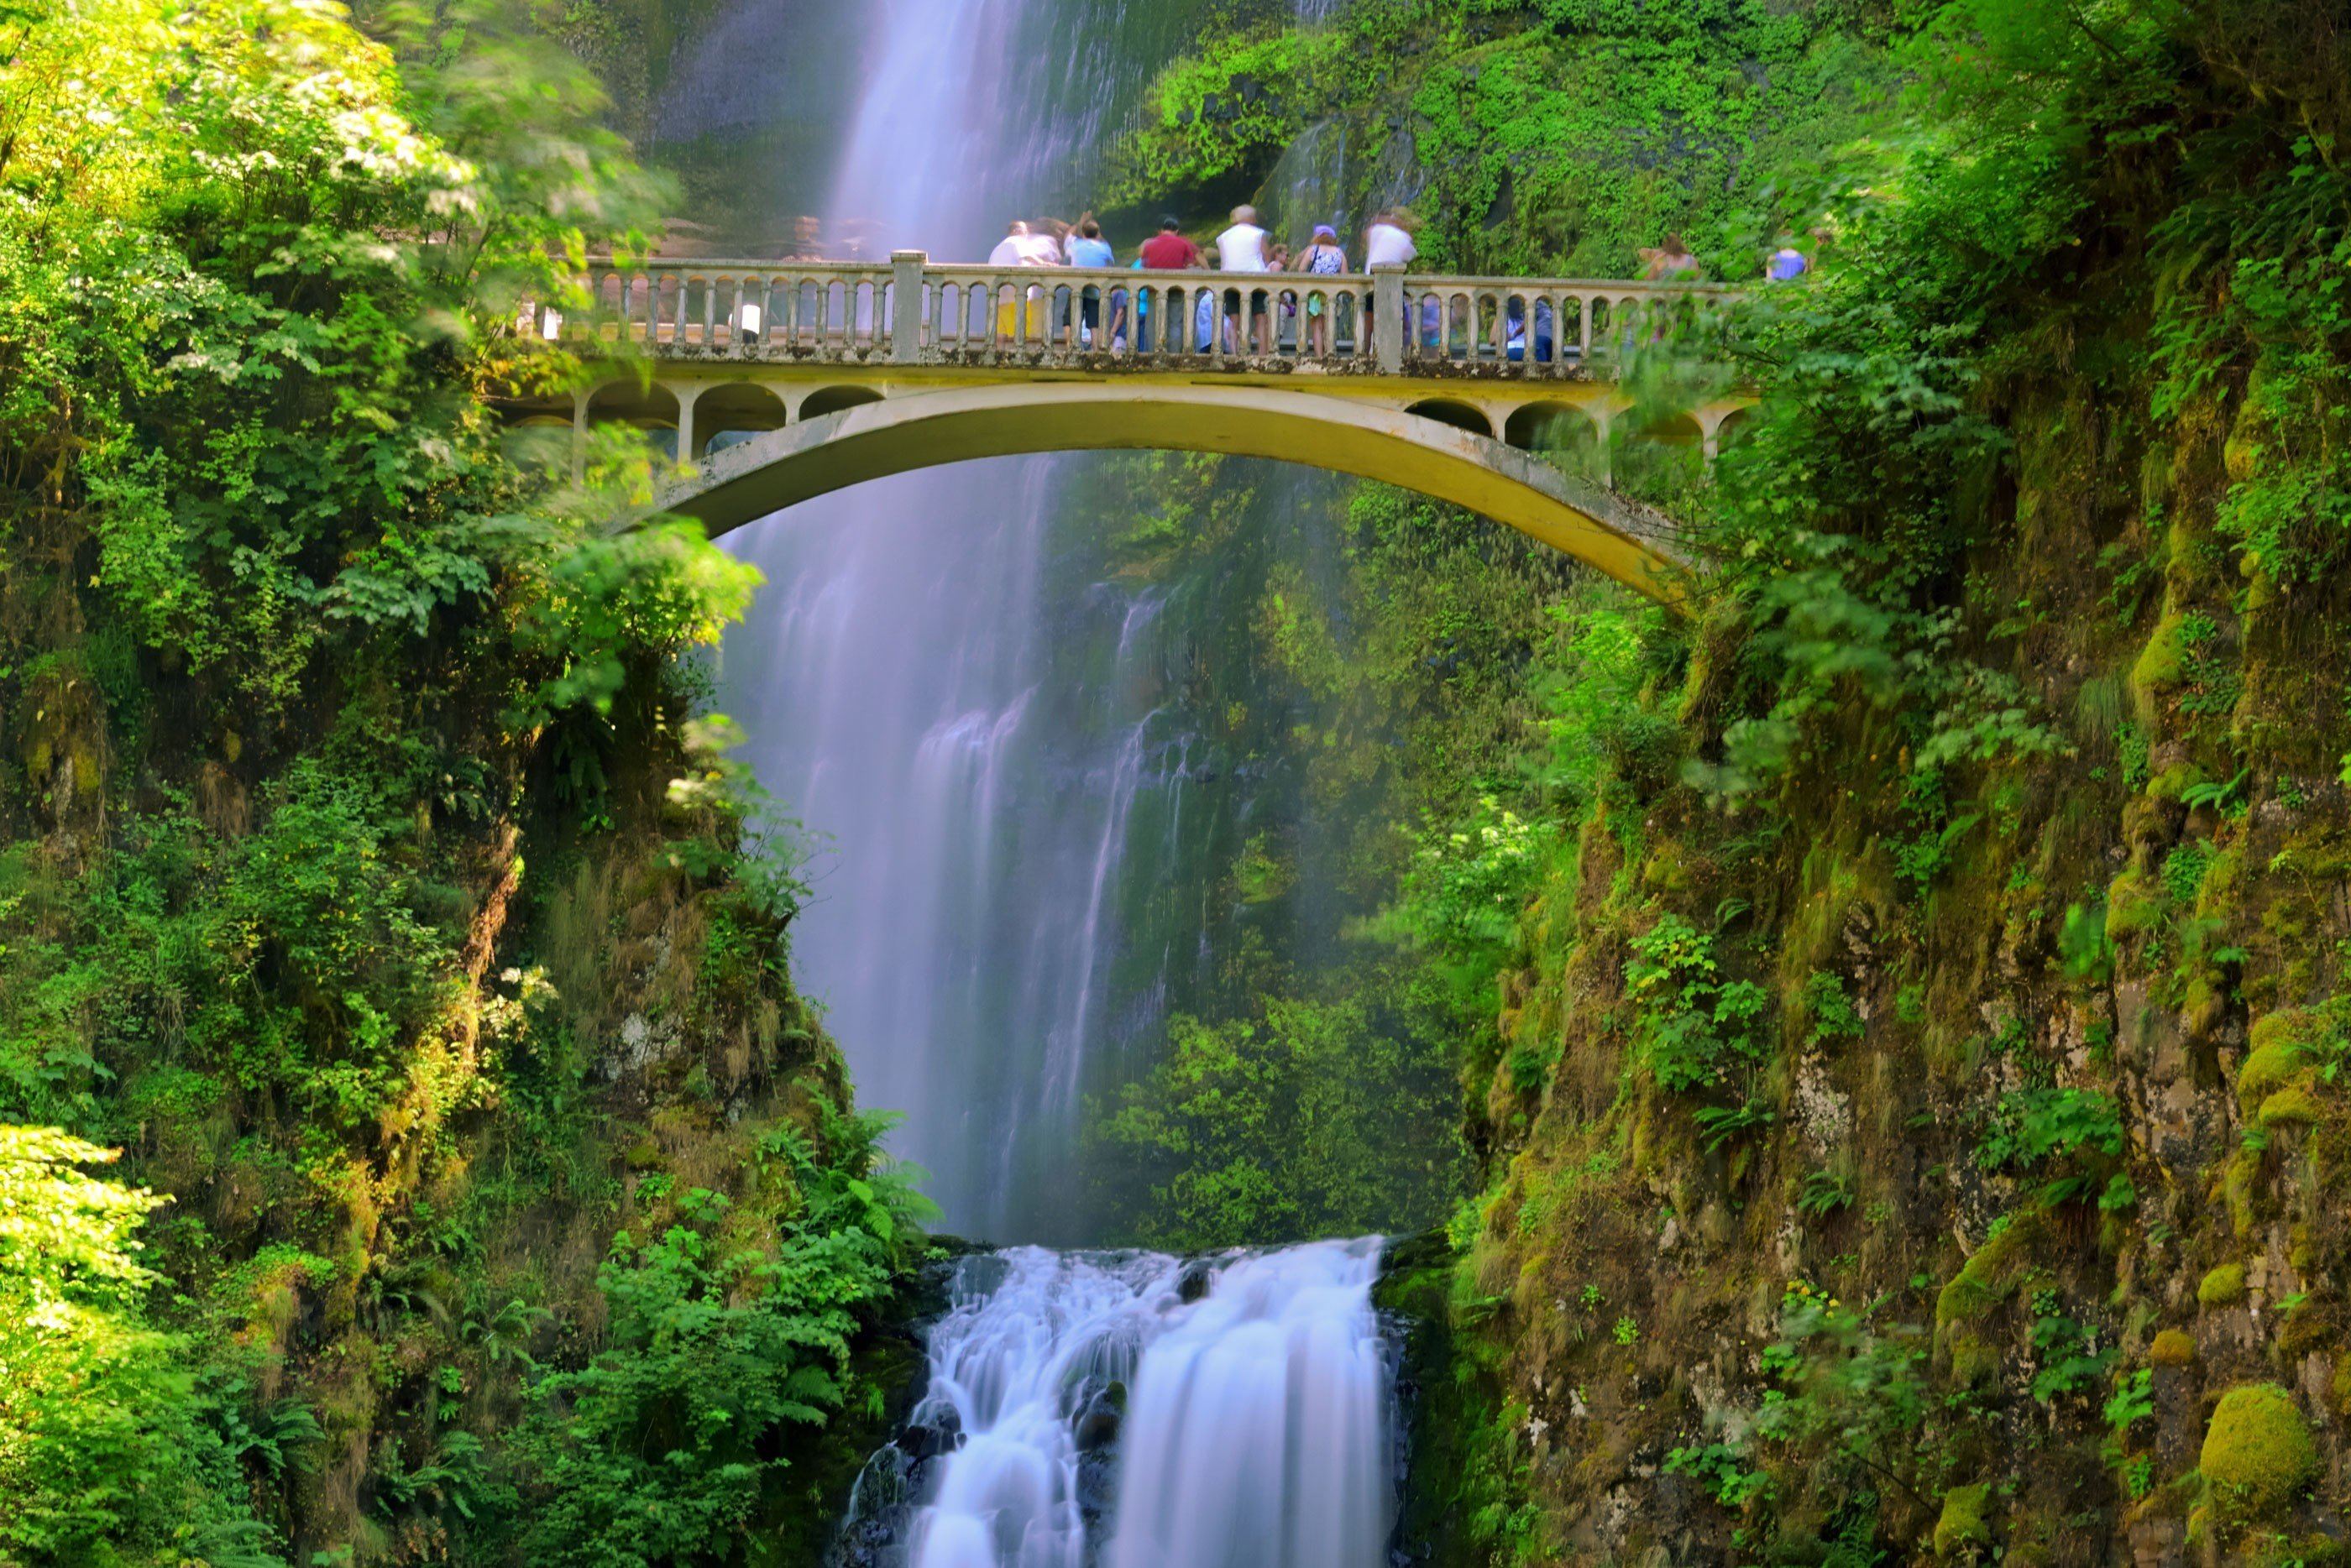 Trip Ideas Weekend Getaways tree Nature outdoor Waterfall water body of water watercourse water feature Forest River rainforest bridge reflection wasserfall traveling Jungle autumn waterway surrounded wooded